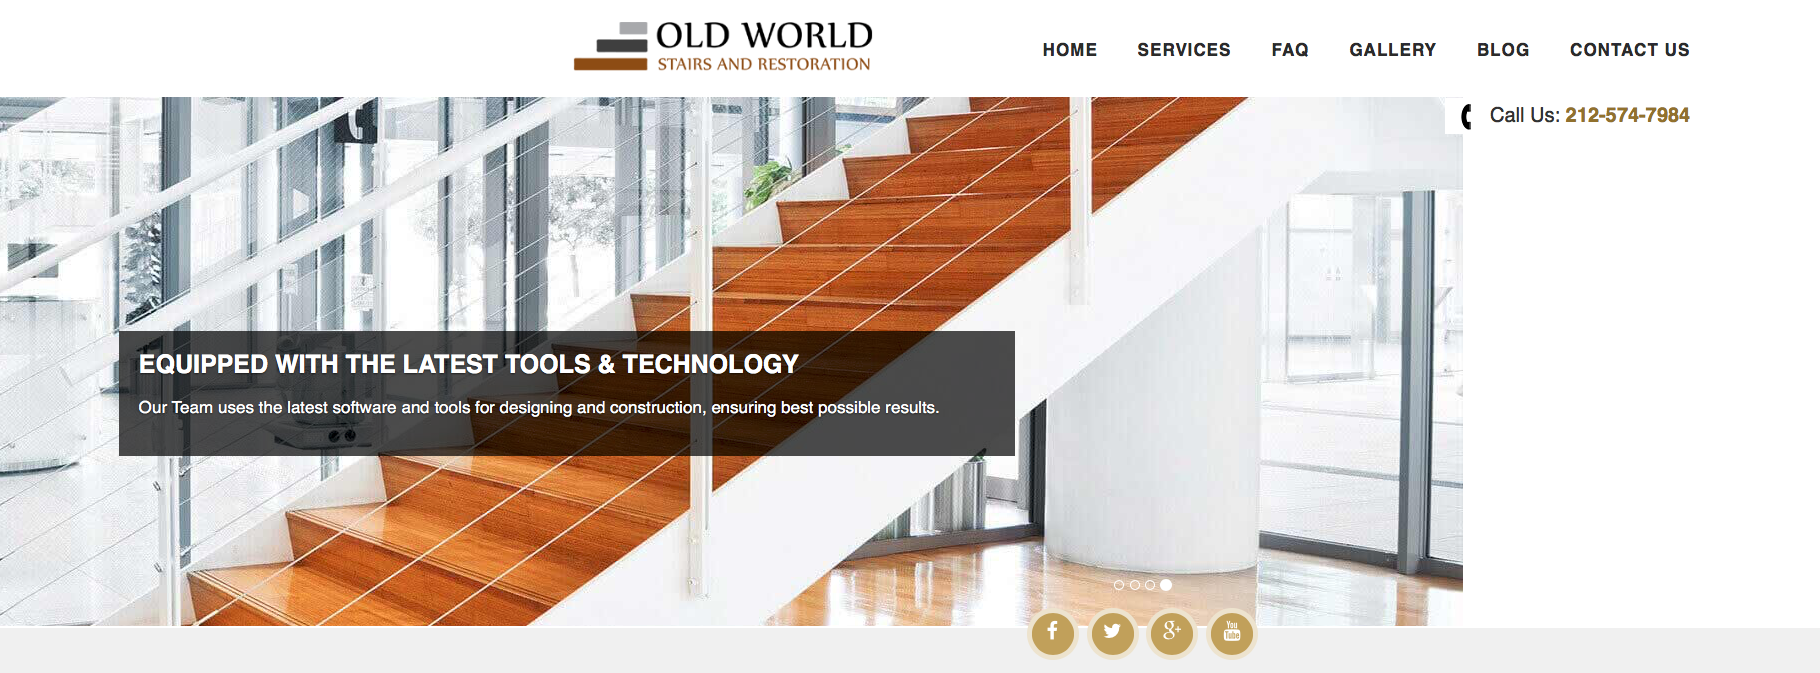 OLD WORLD STAIRS & RESTORATION